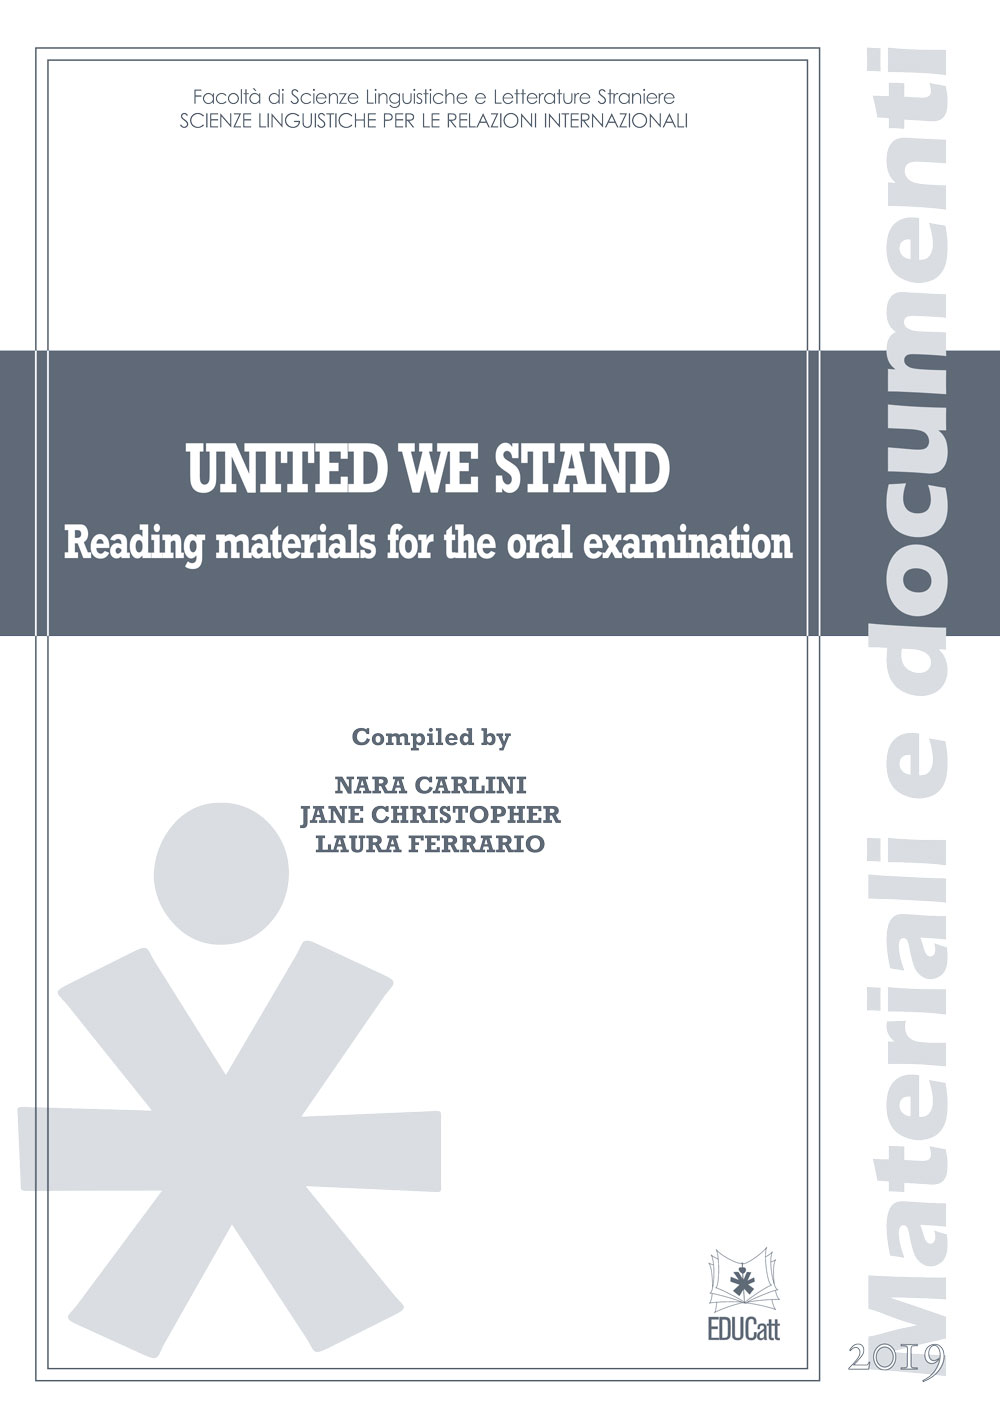 UNITED WE STAND. READING MATERIALS FOR THE ORAL EXAMINATION 2019